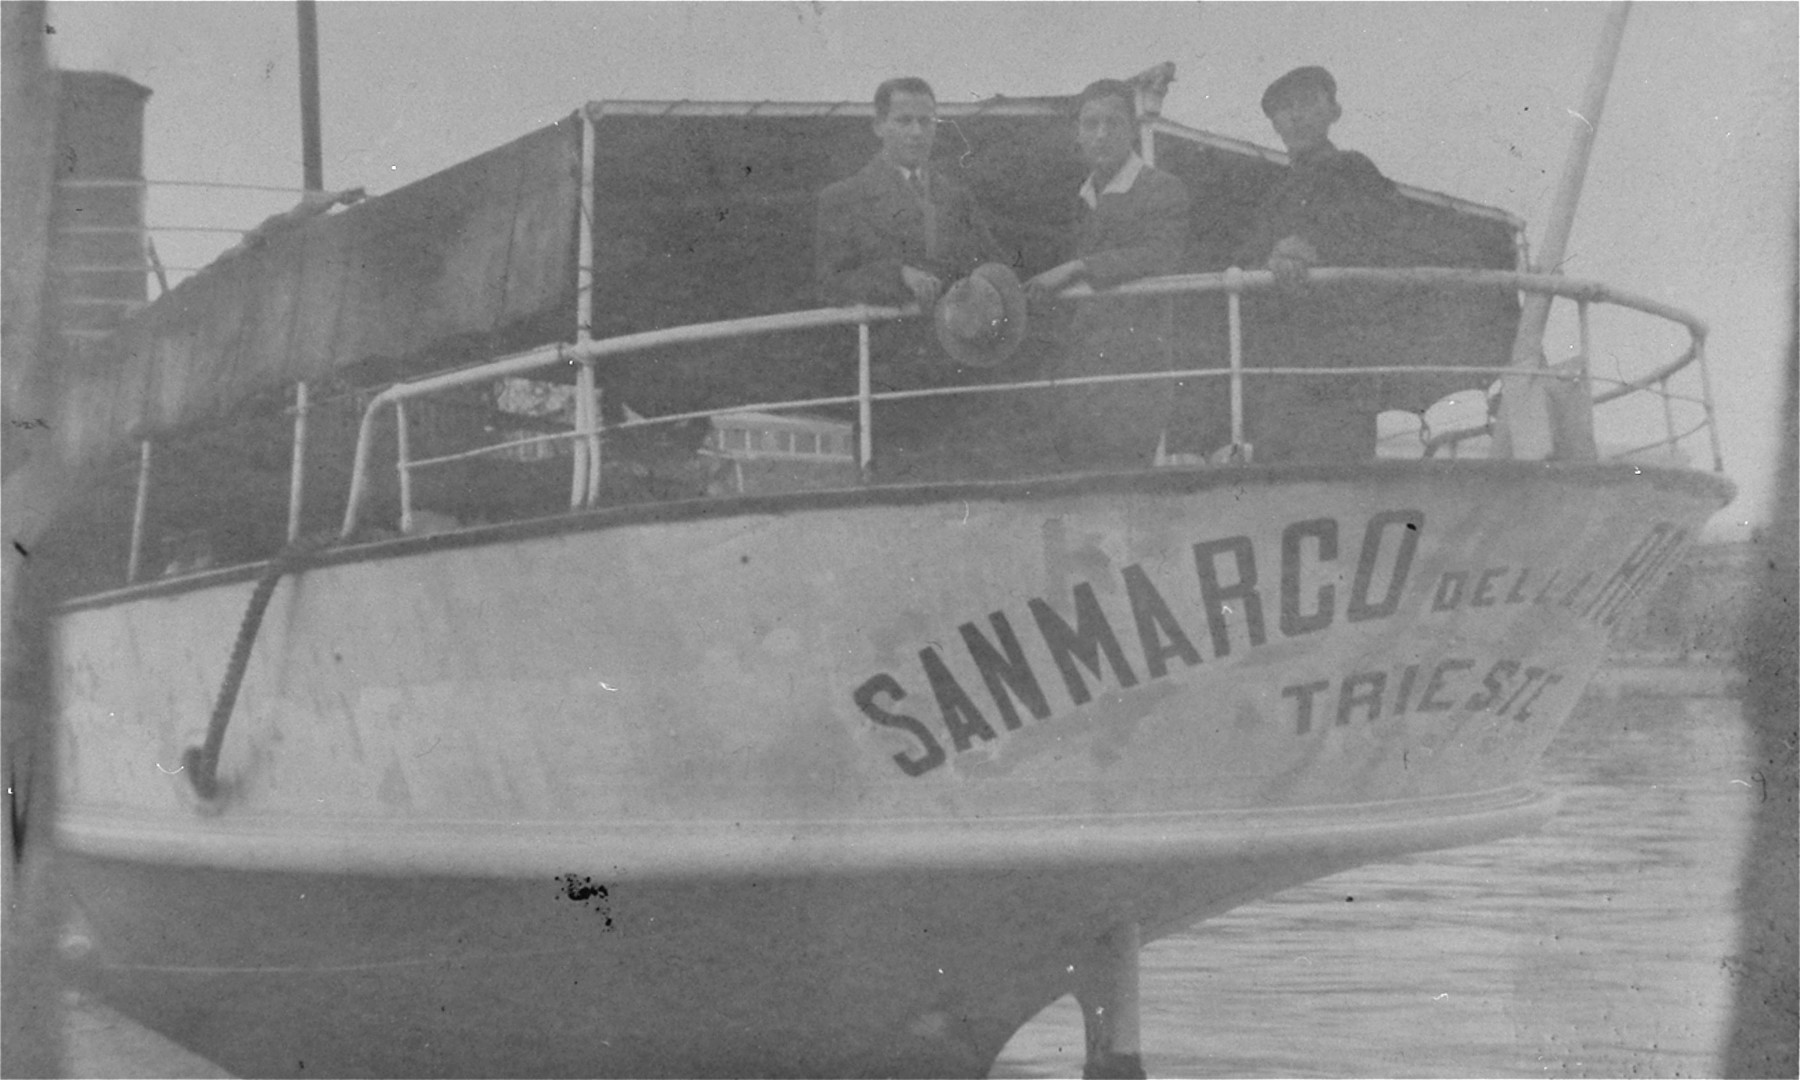 Three young men from Kolbuszowa, Poland, depart for Palestine aboard the ship San Marco.    Pictured from left to right are Shaye Dershowitz, Meyer Fliegelman, and David Saleschütz.